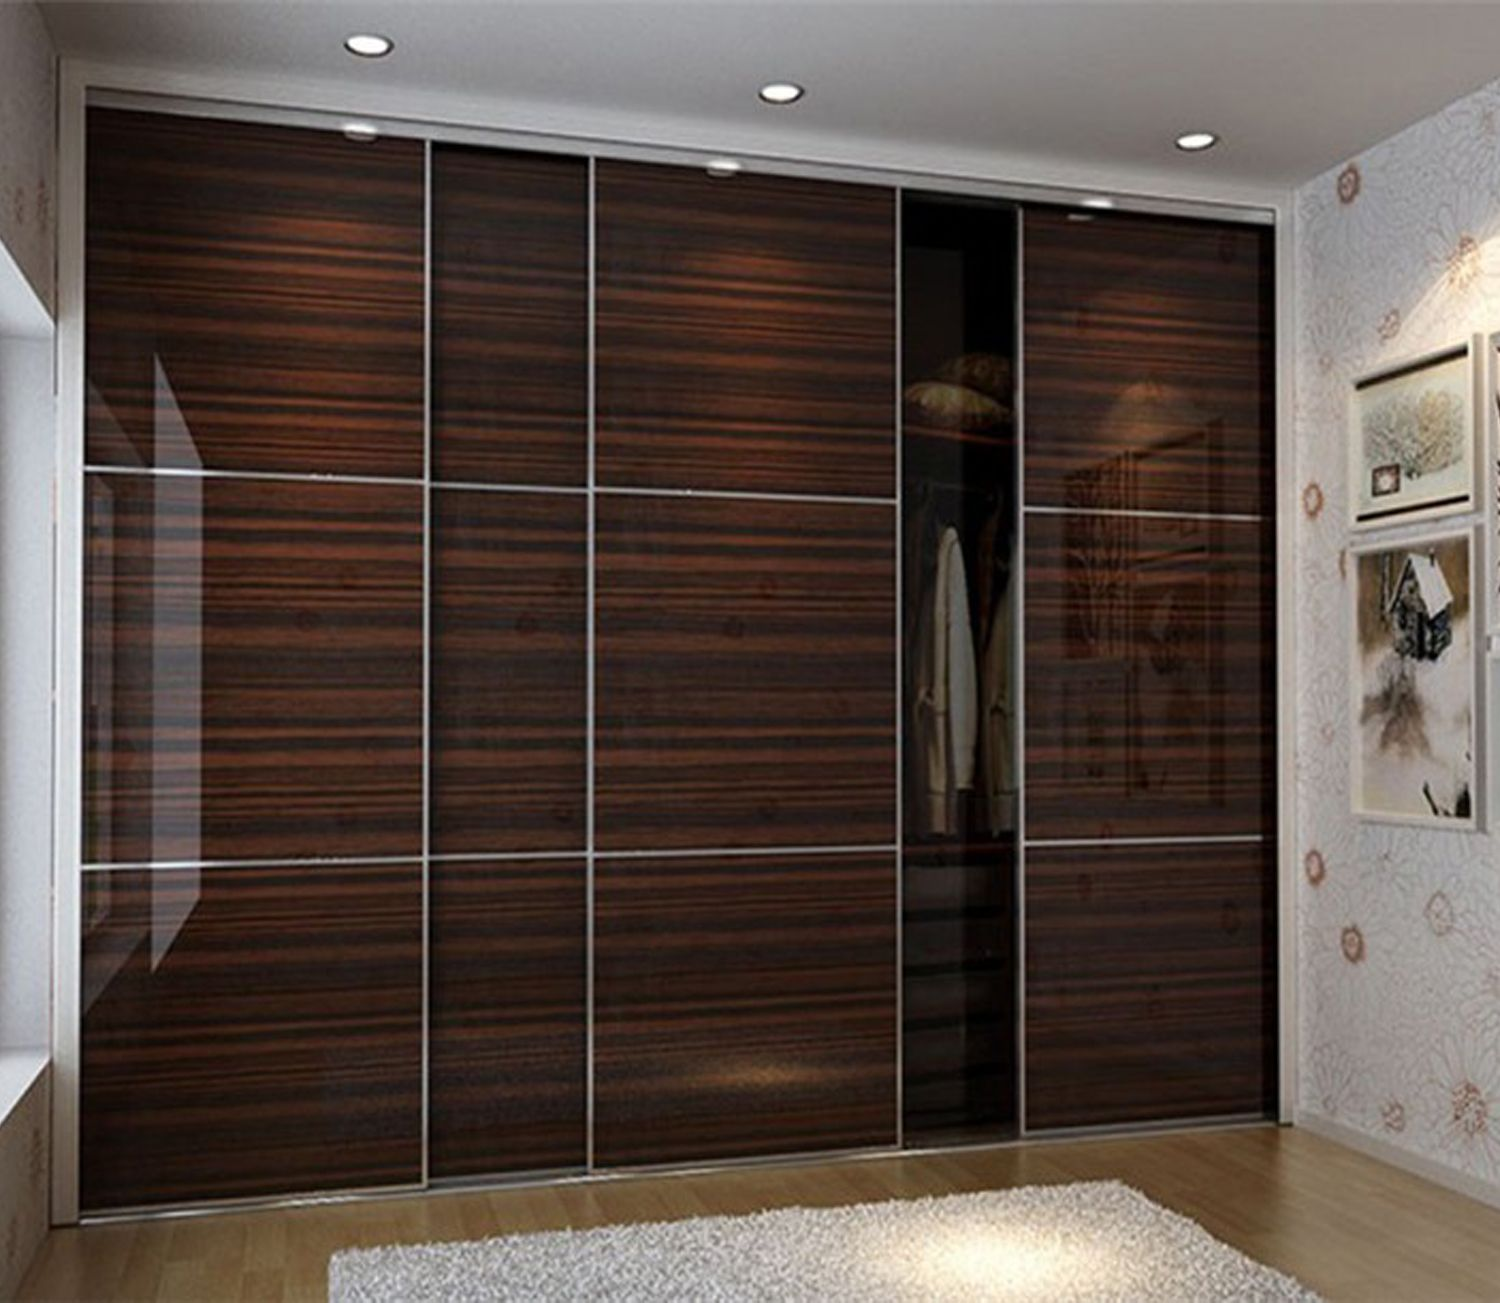 Wall Wardrobe Design Laminate Wardrobe Designs In Black Bedroom Furniture This